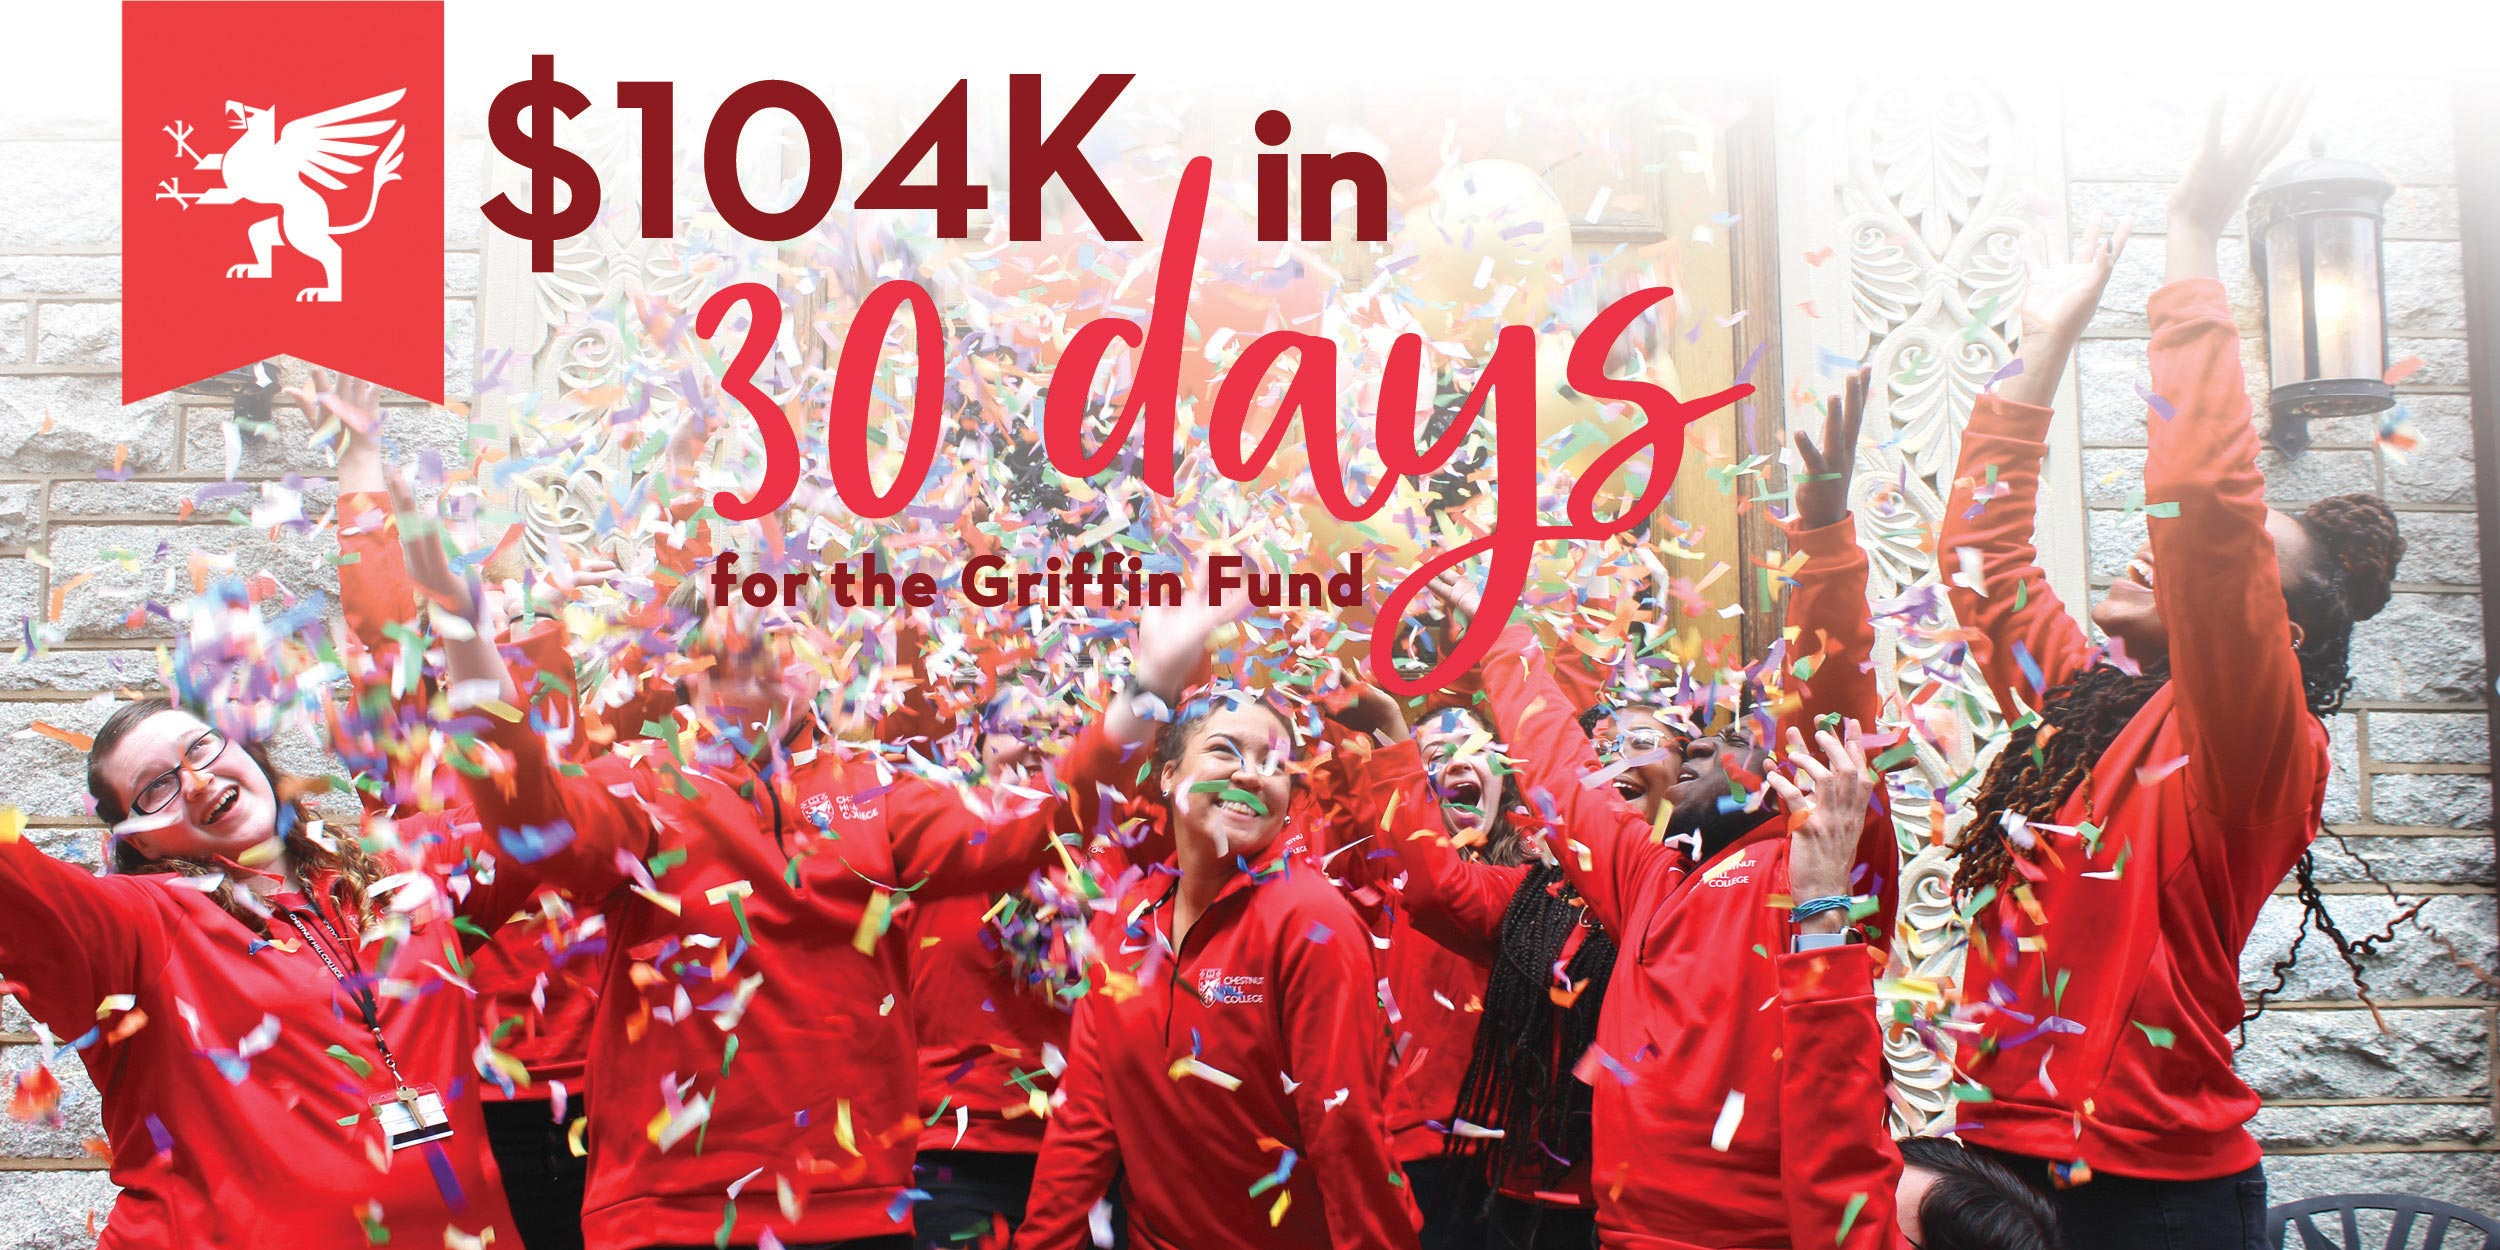 $104k in 30 days for the Griffin Fund!